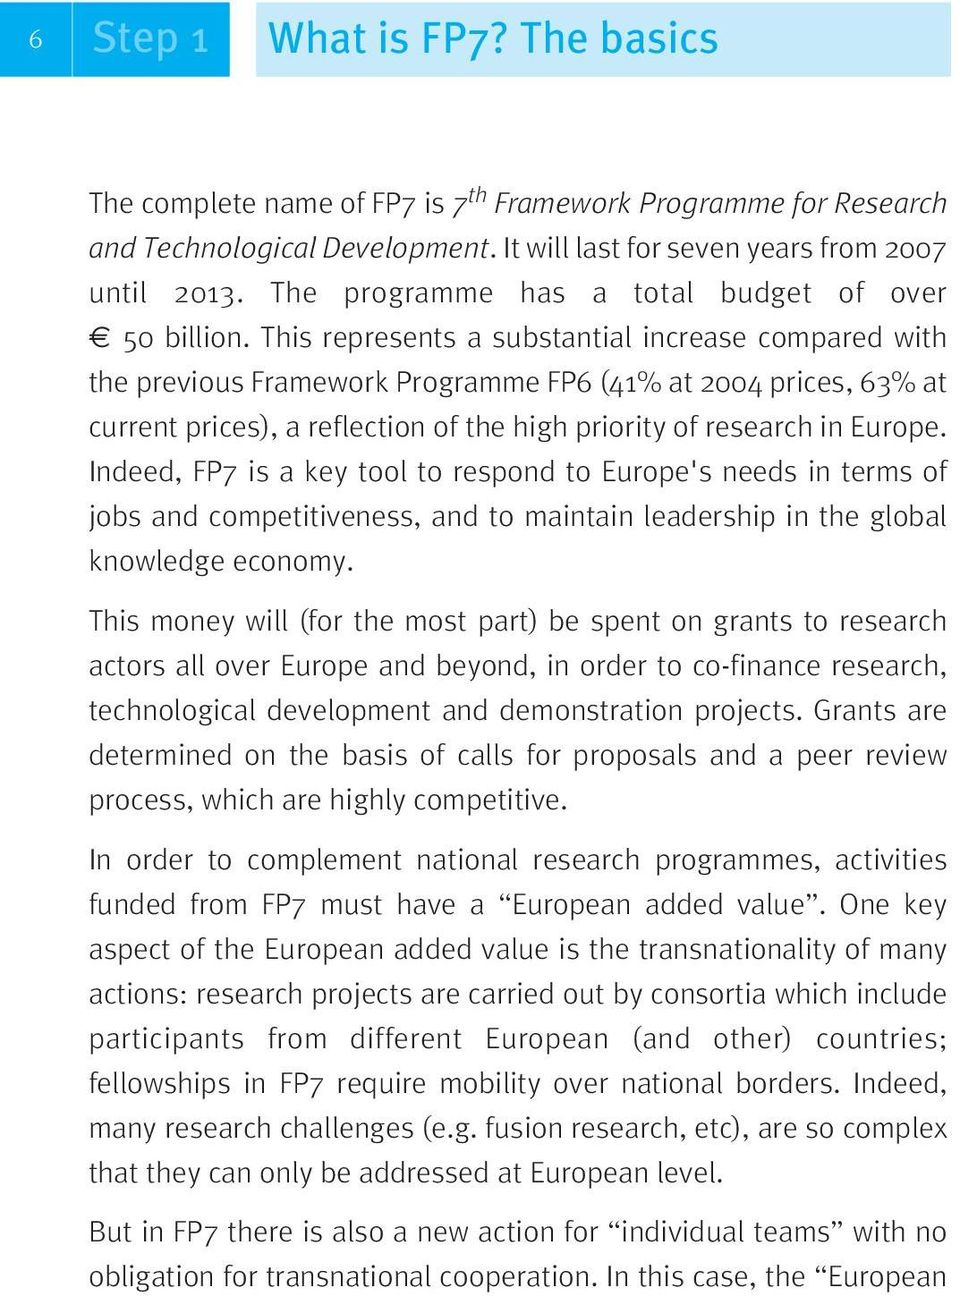 This represents a substantial increase compared with the previous Framework Programme FP6 (41% at 2004 prices, 63% at current prices), a reflection of the high priority of research in Europe.